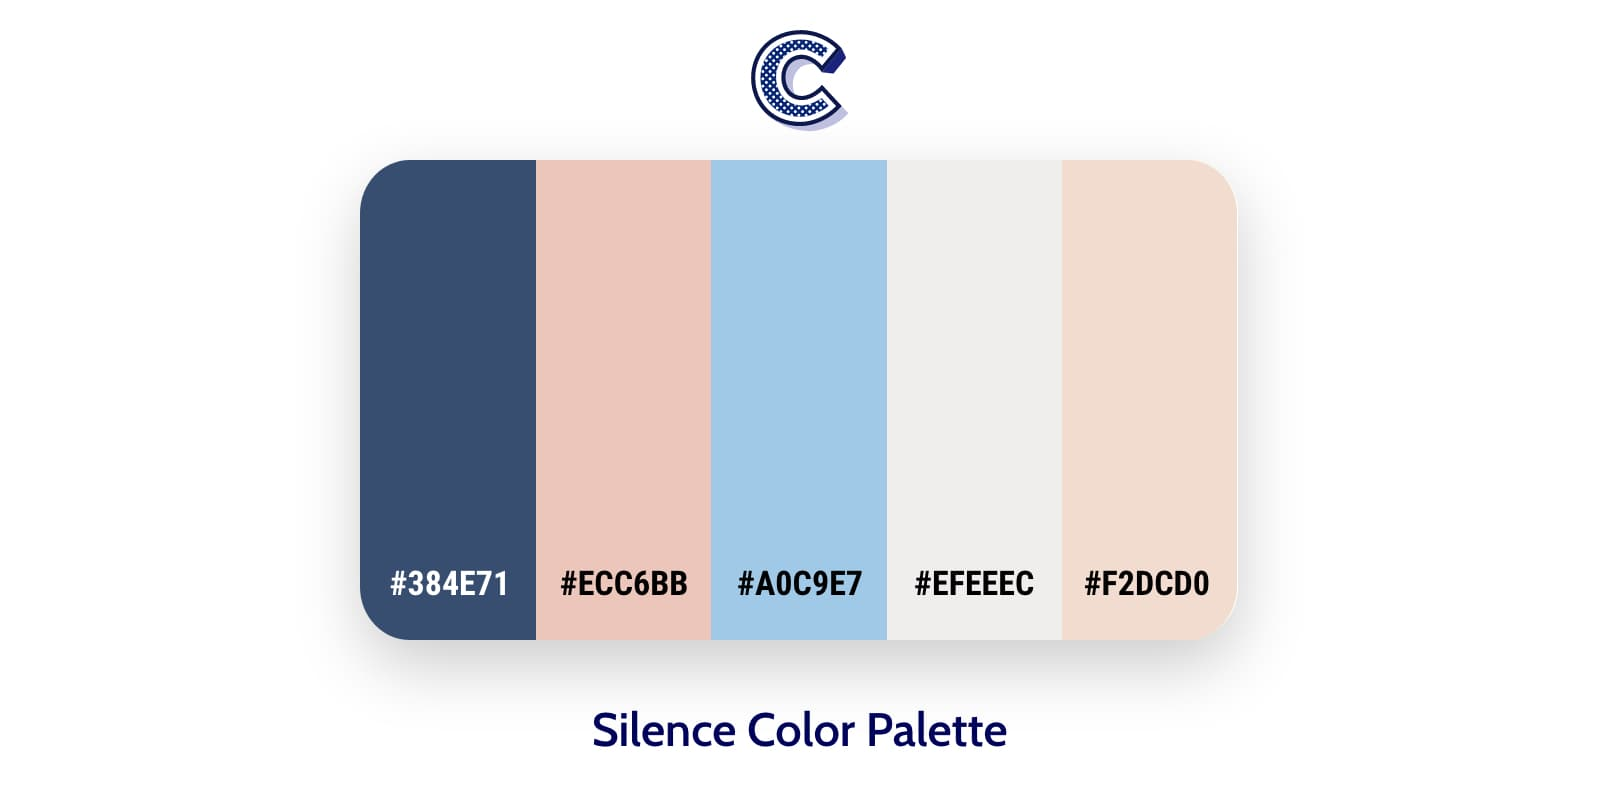 the featured image of silence color palette